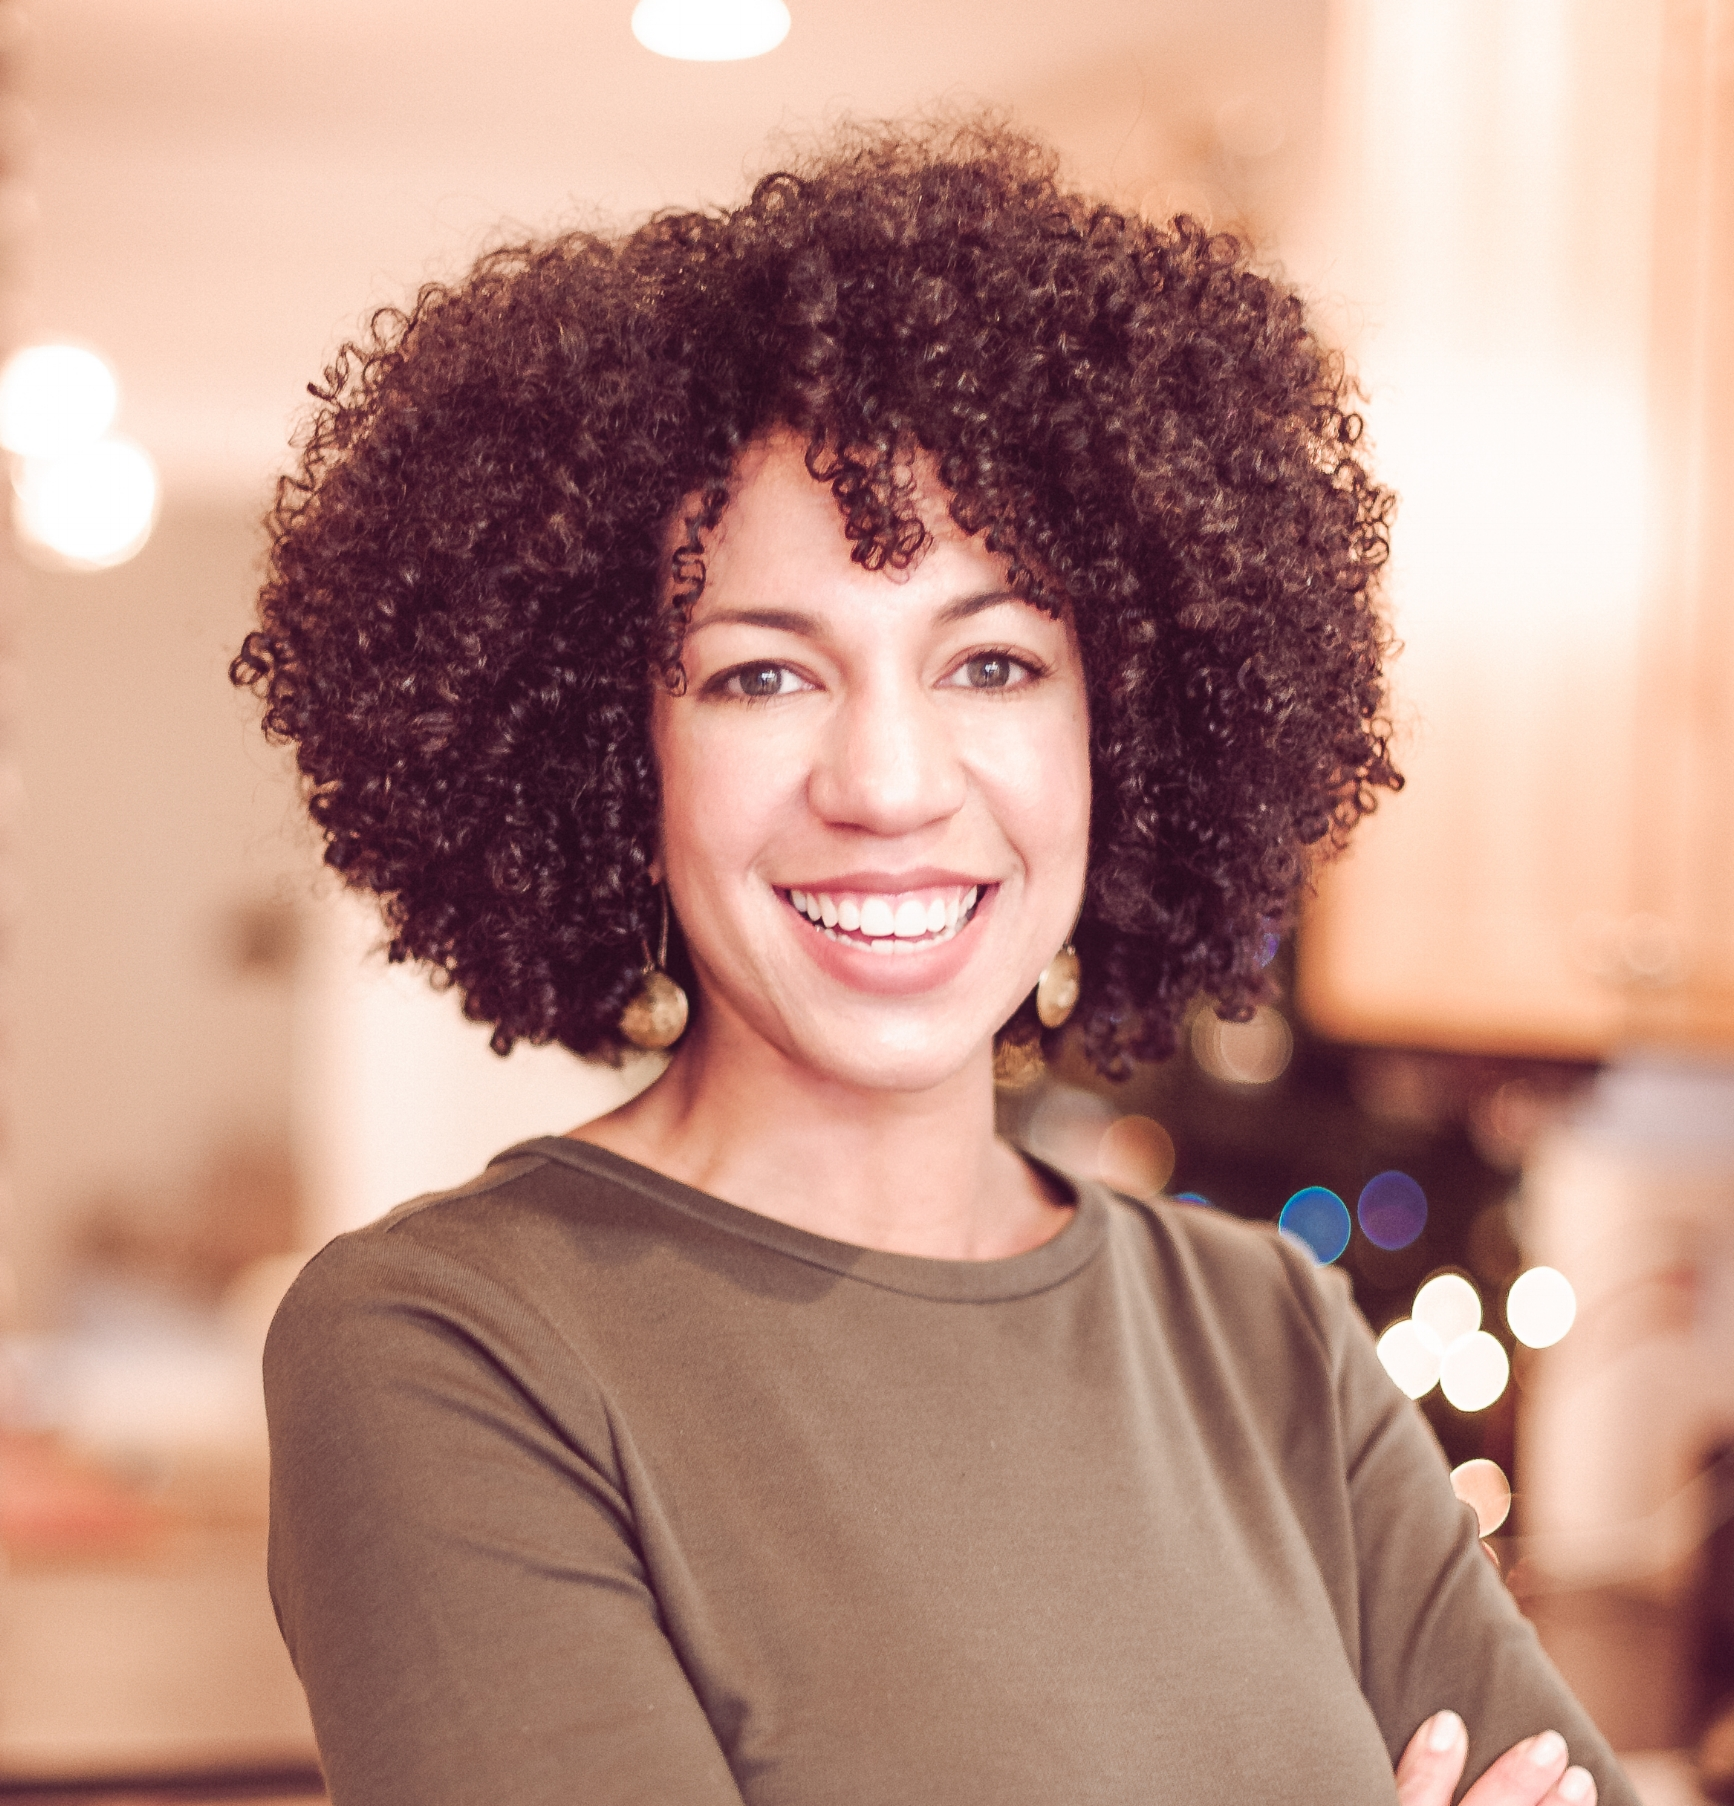 Heather Z. Lyons, PhD, Licensed Psychologist, Therapist in Baltimore